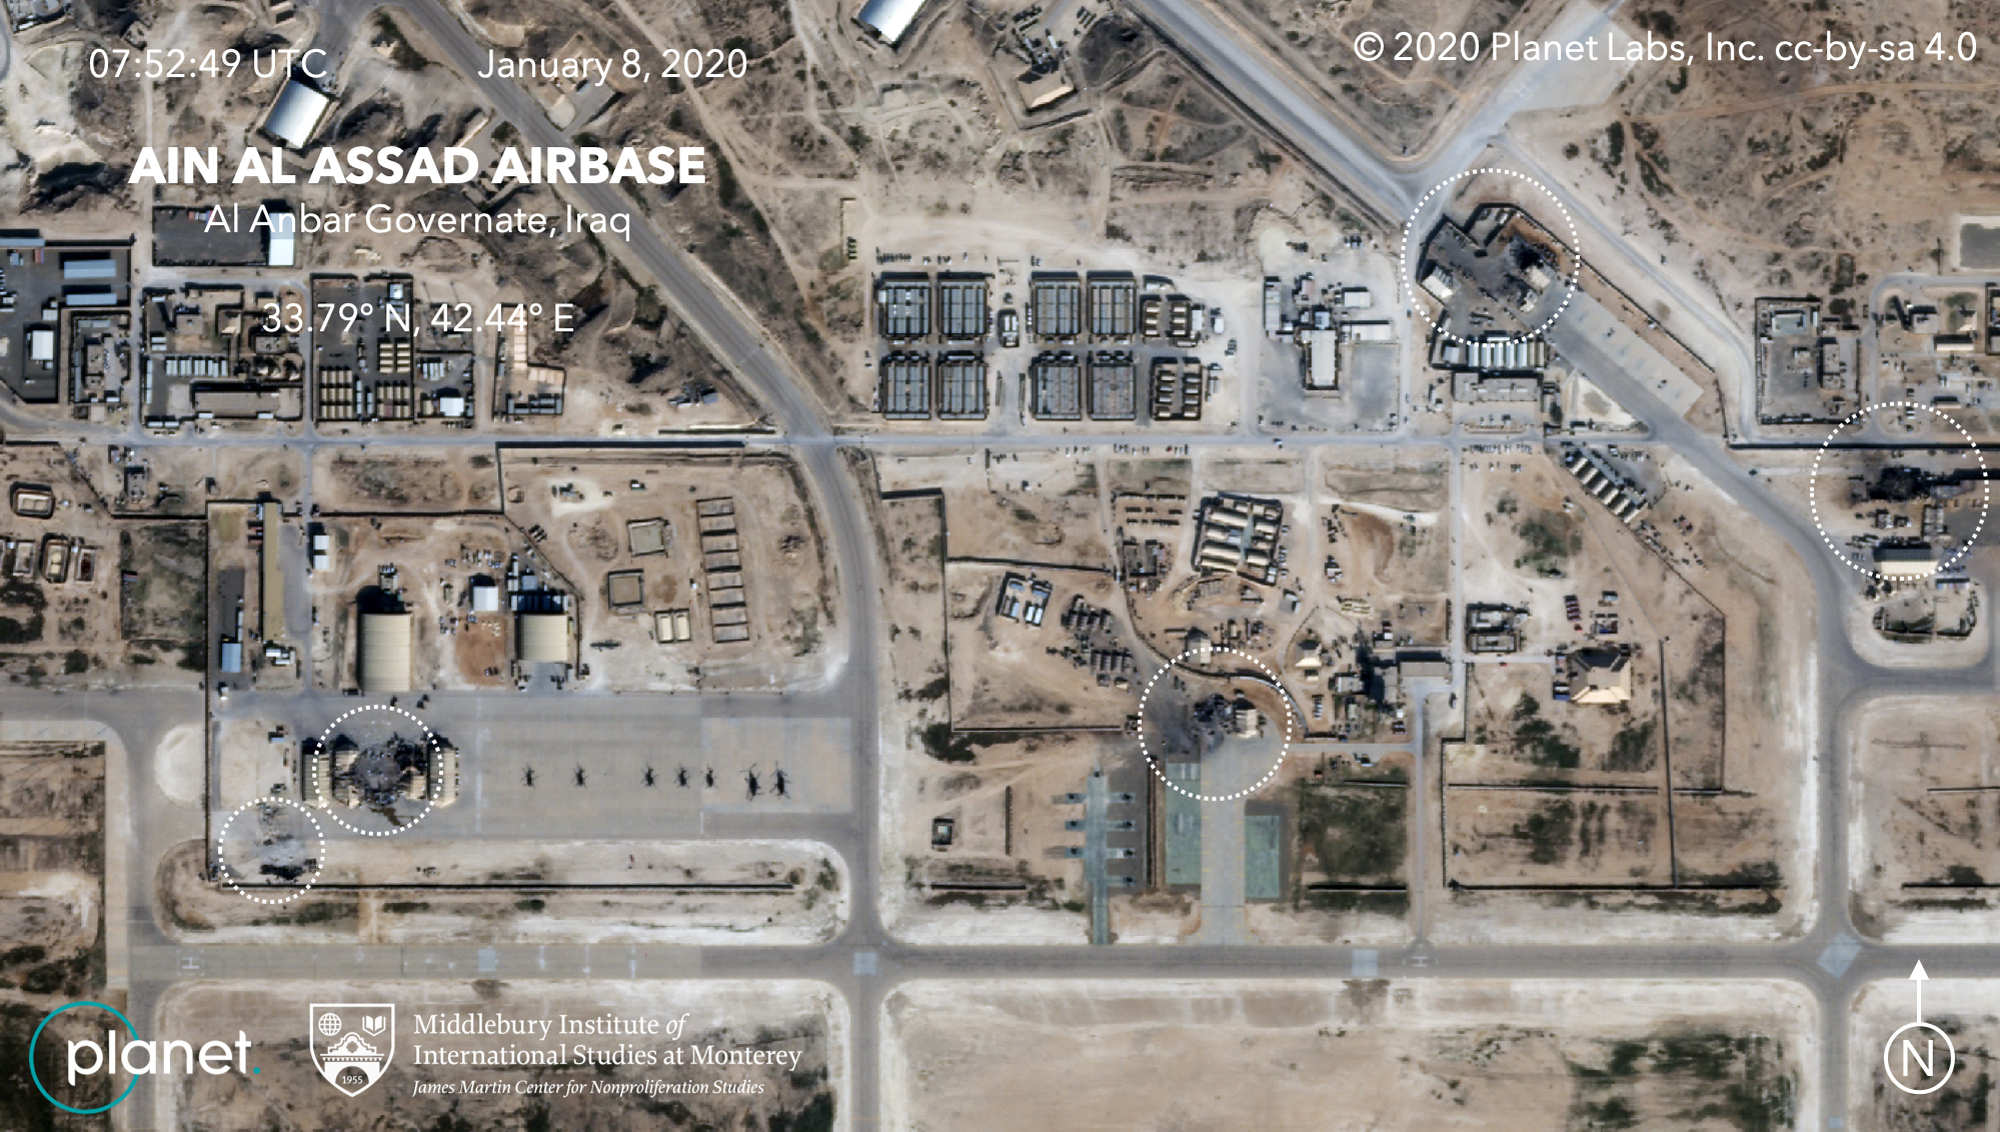 Analysis of the Airstrike on the Ayn al-Assad Airbase